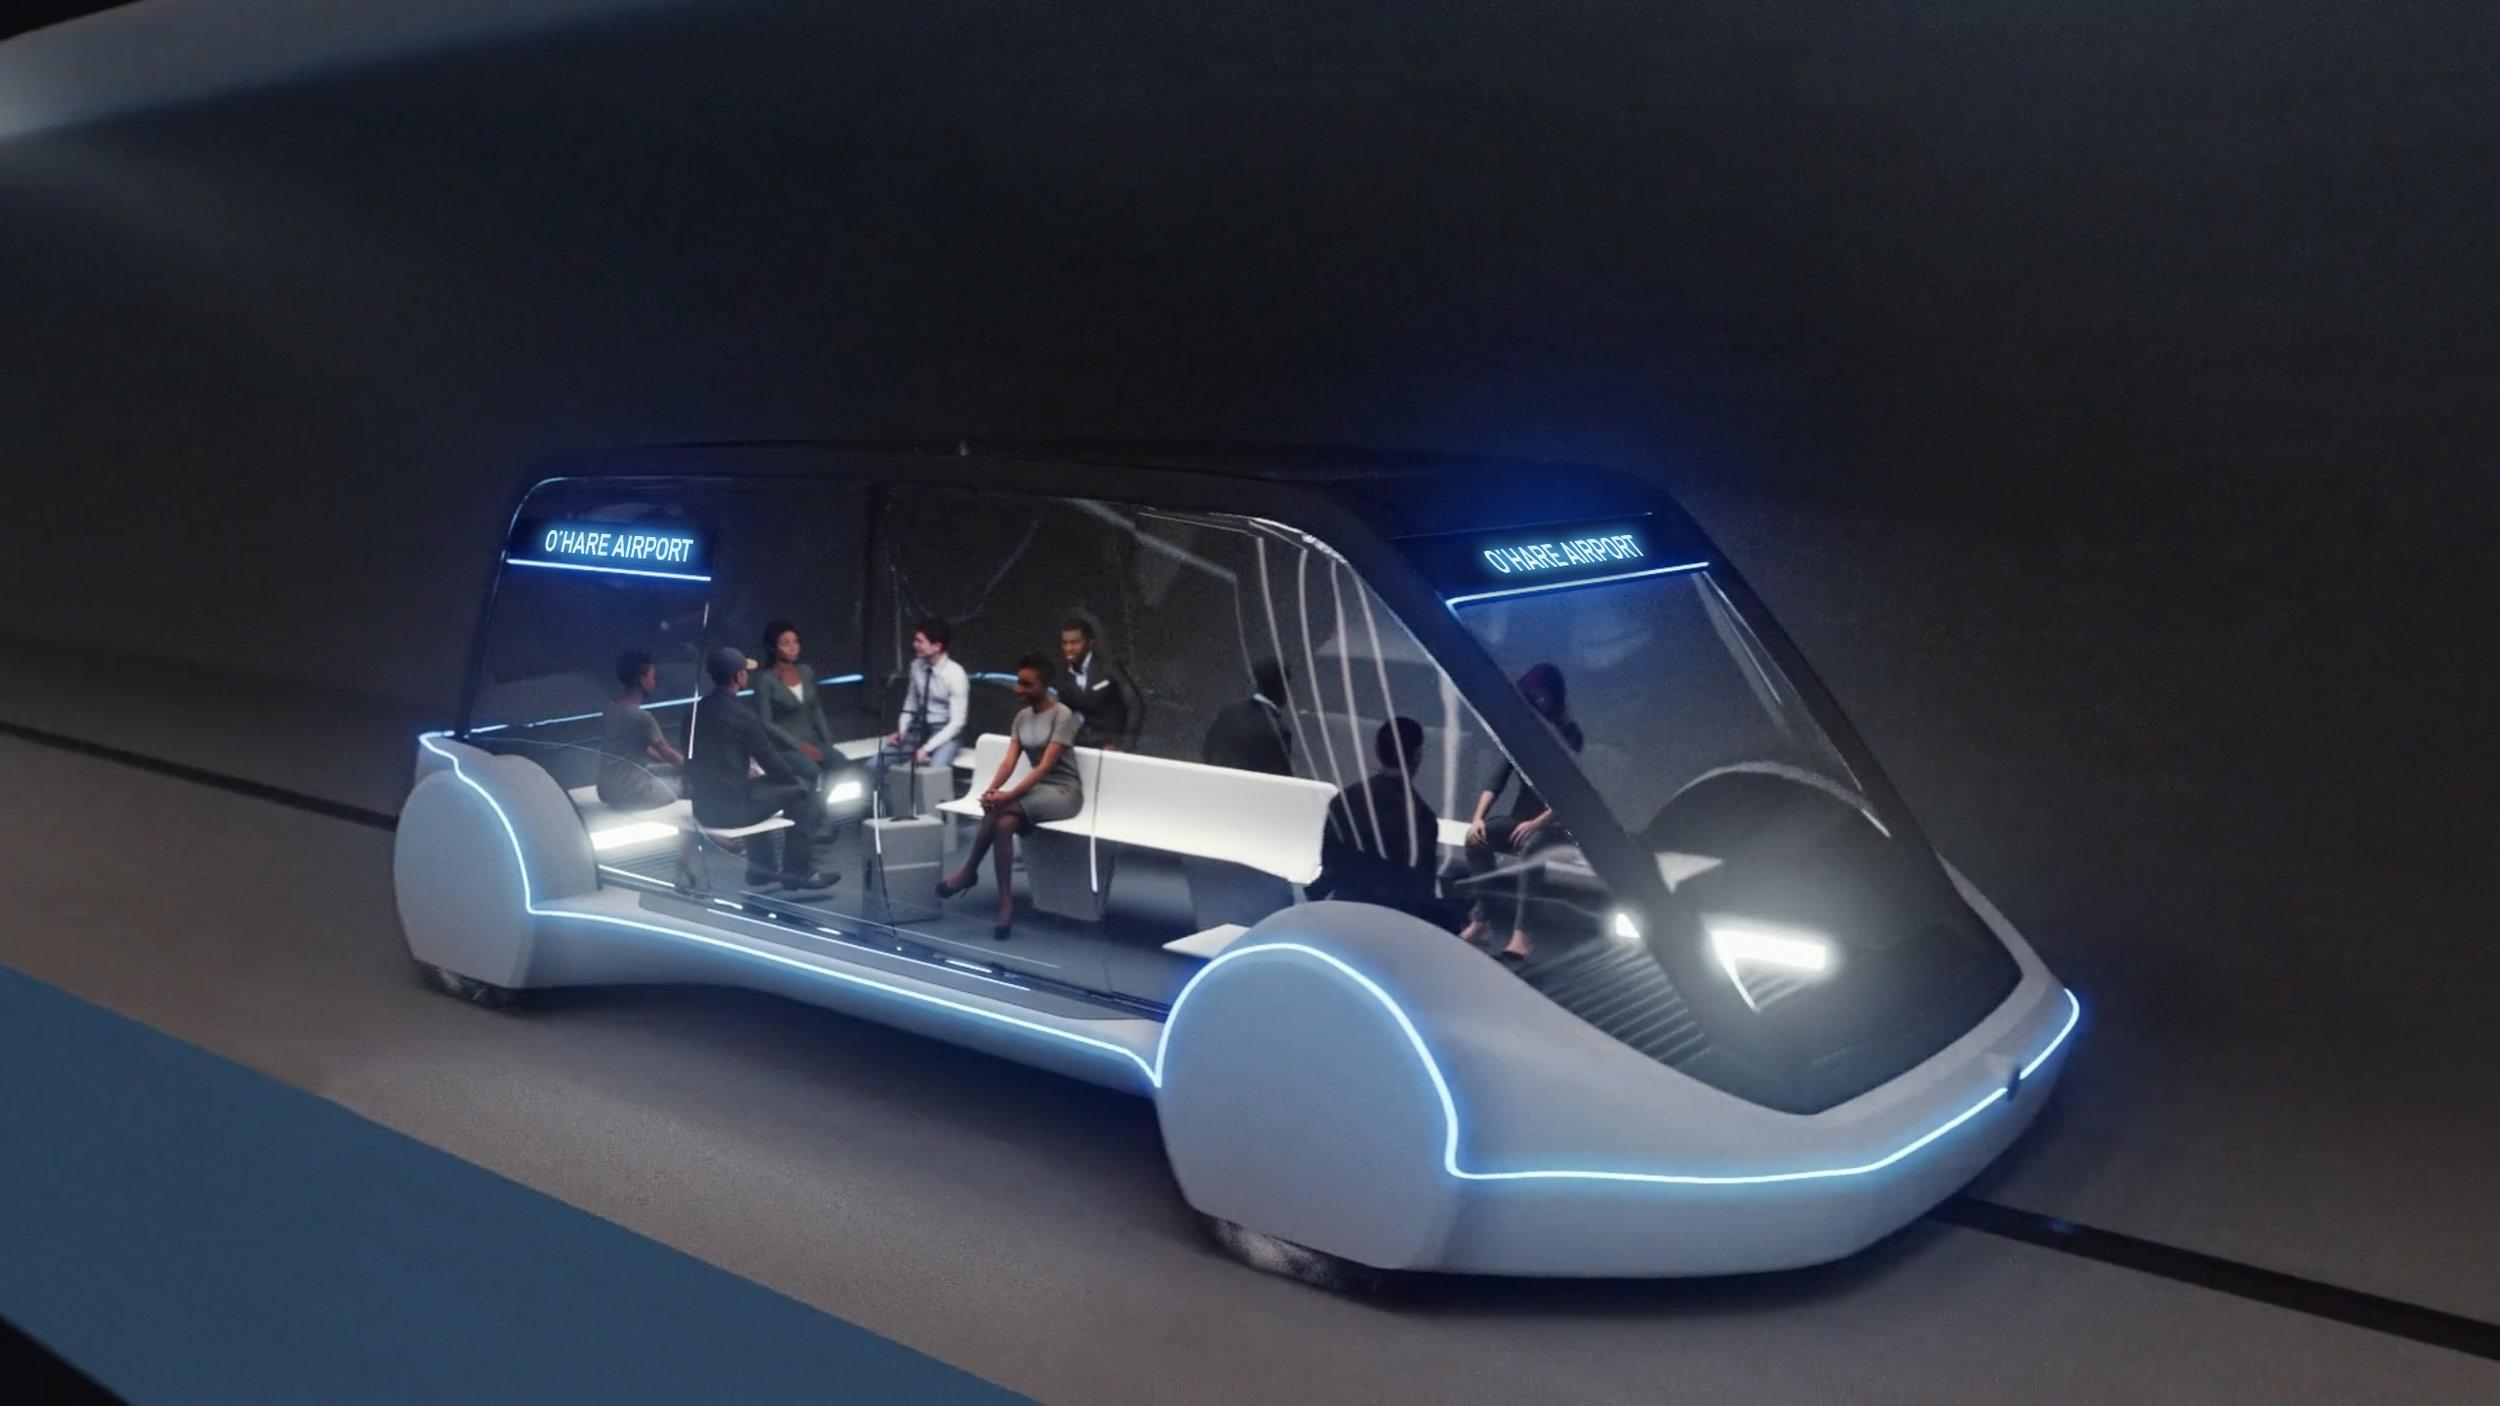 Elon Musk's proposal calls for an underground system that transports travelers on pods at speeds of 125-150 mph. (Credit: The Boring Company)